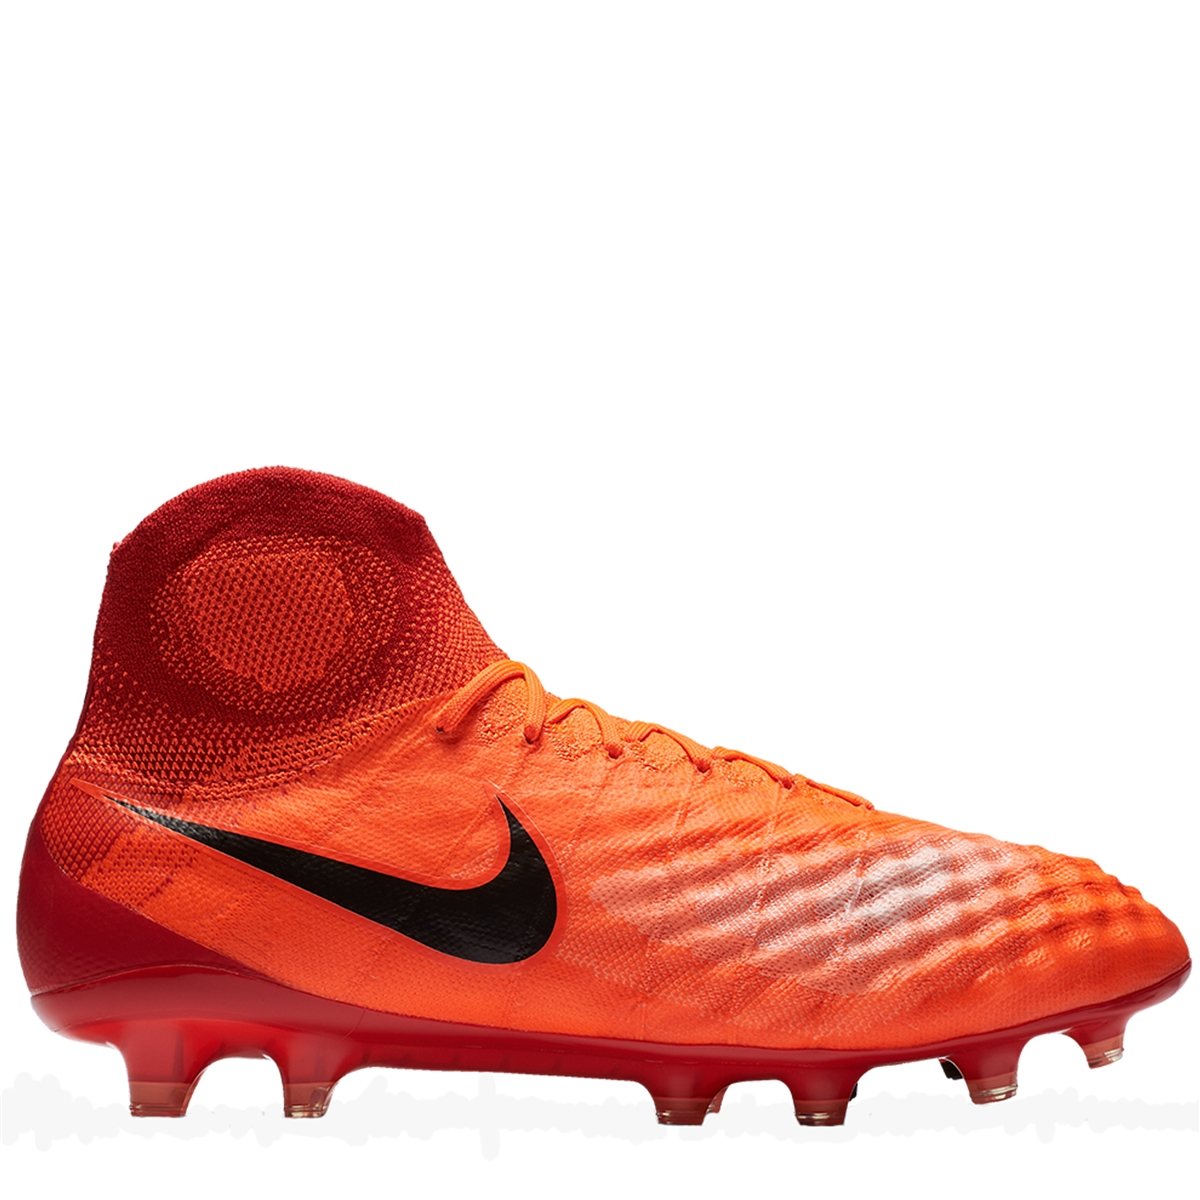 45628c649a0c Nike Magista Obra II FG Soccer Cleats (Total Crimson Black University Red)